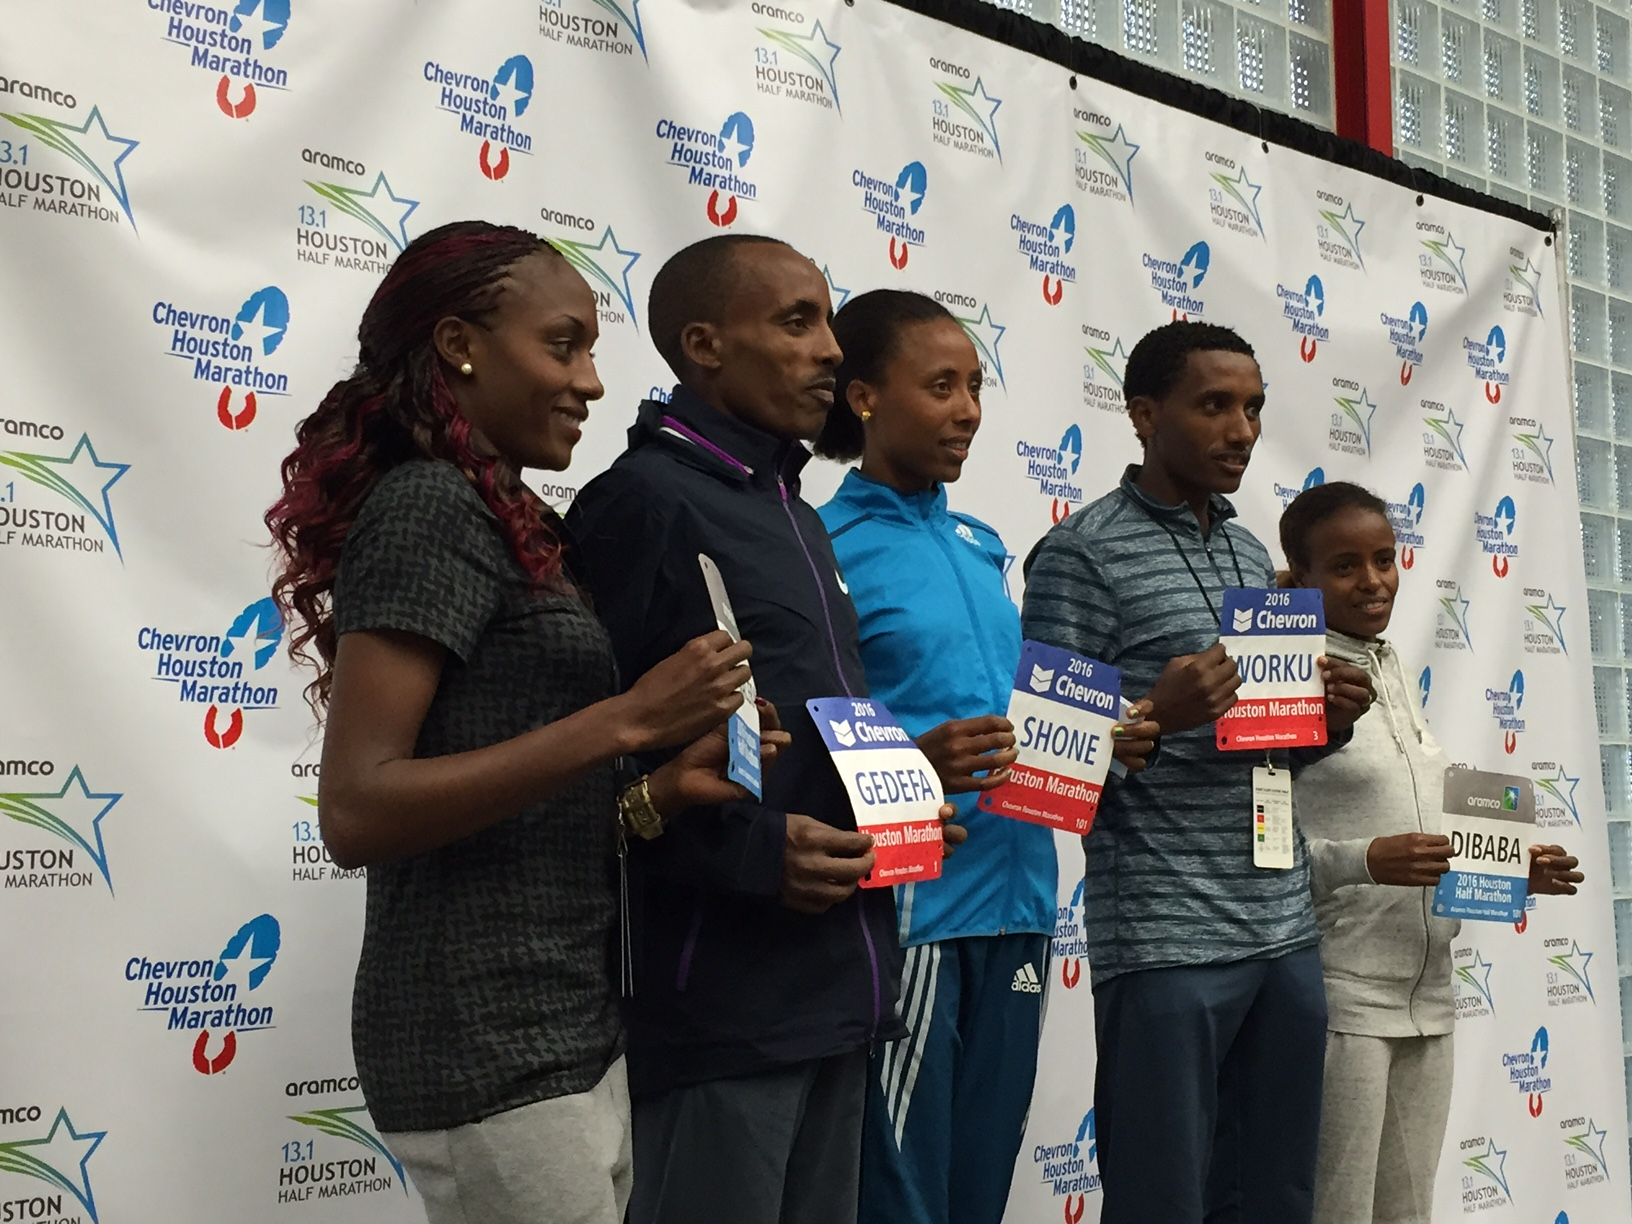 Runners pose for a picture holding their marathon bibs.